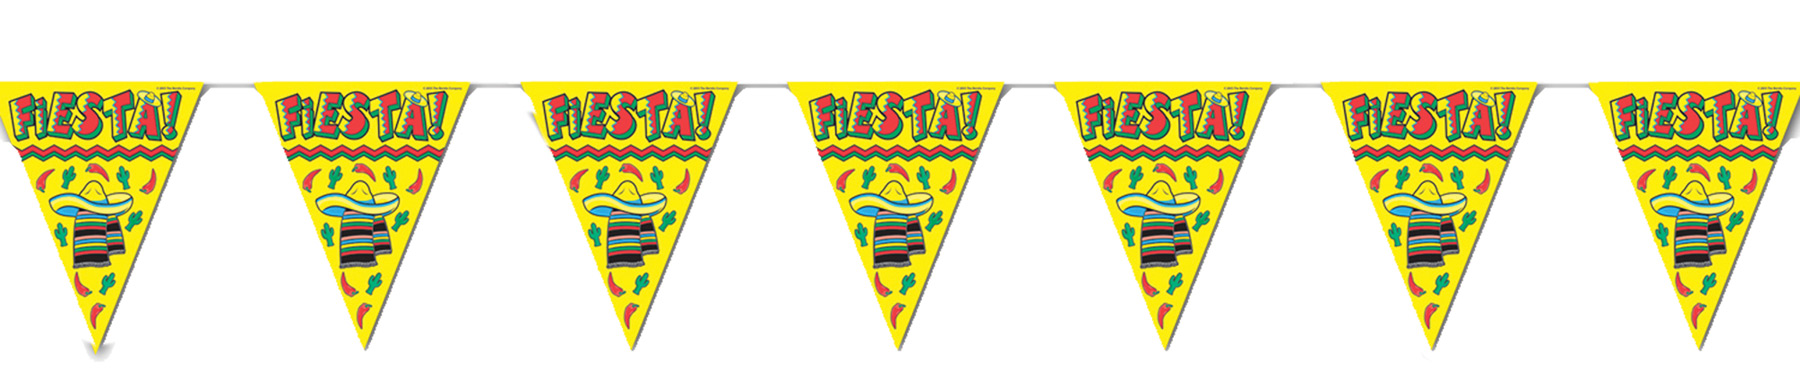 Featured Image for Fiesta! Pennant Banner